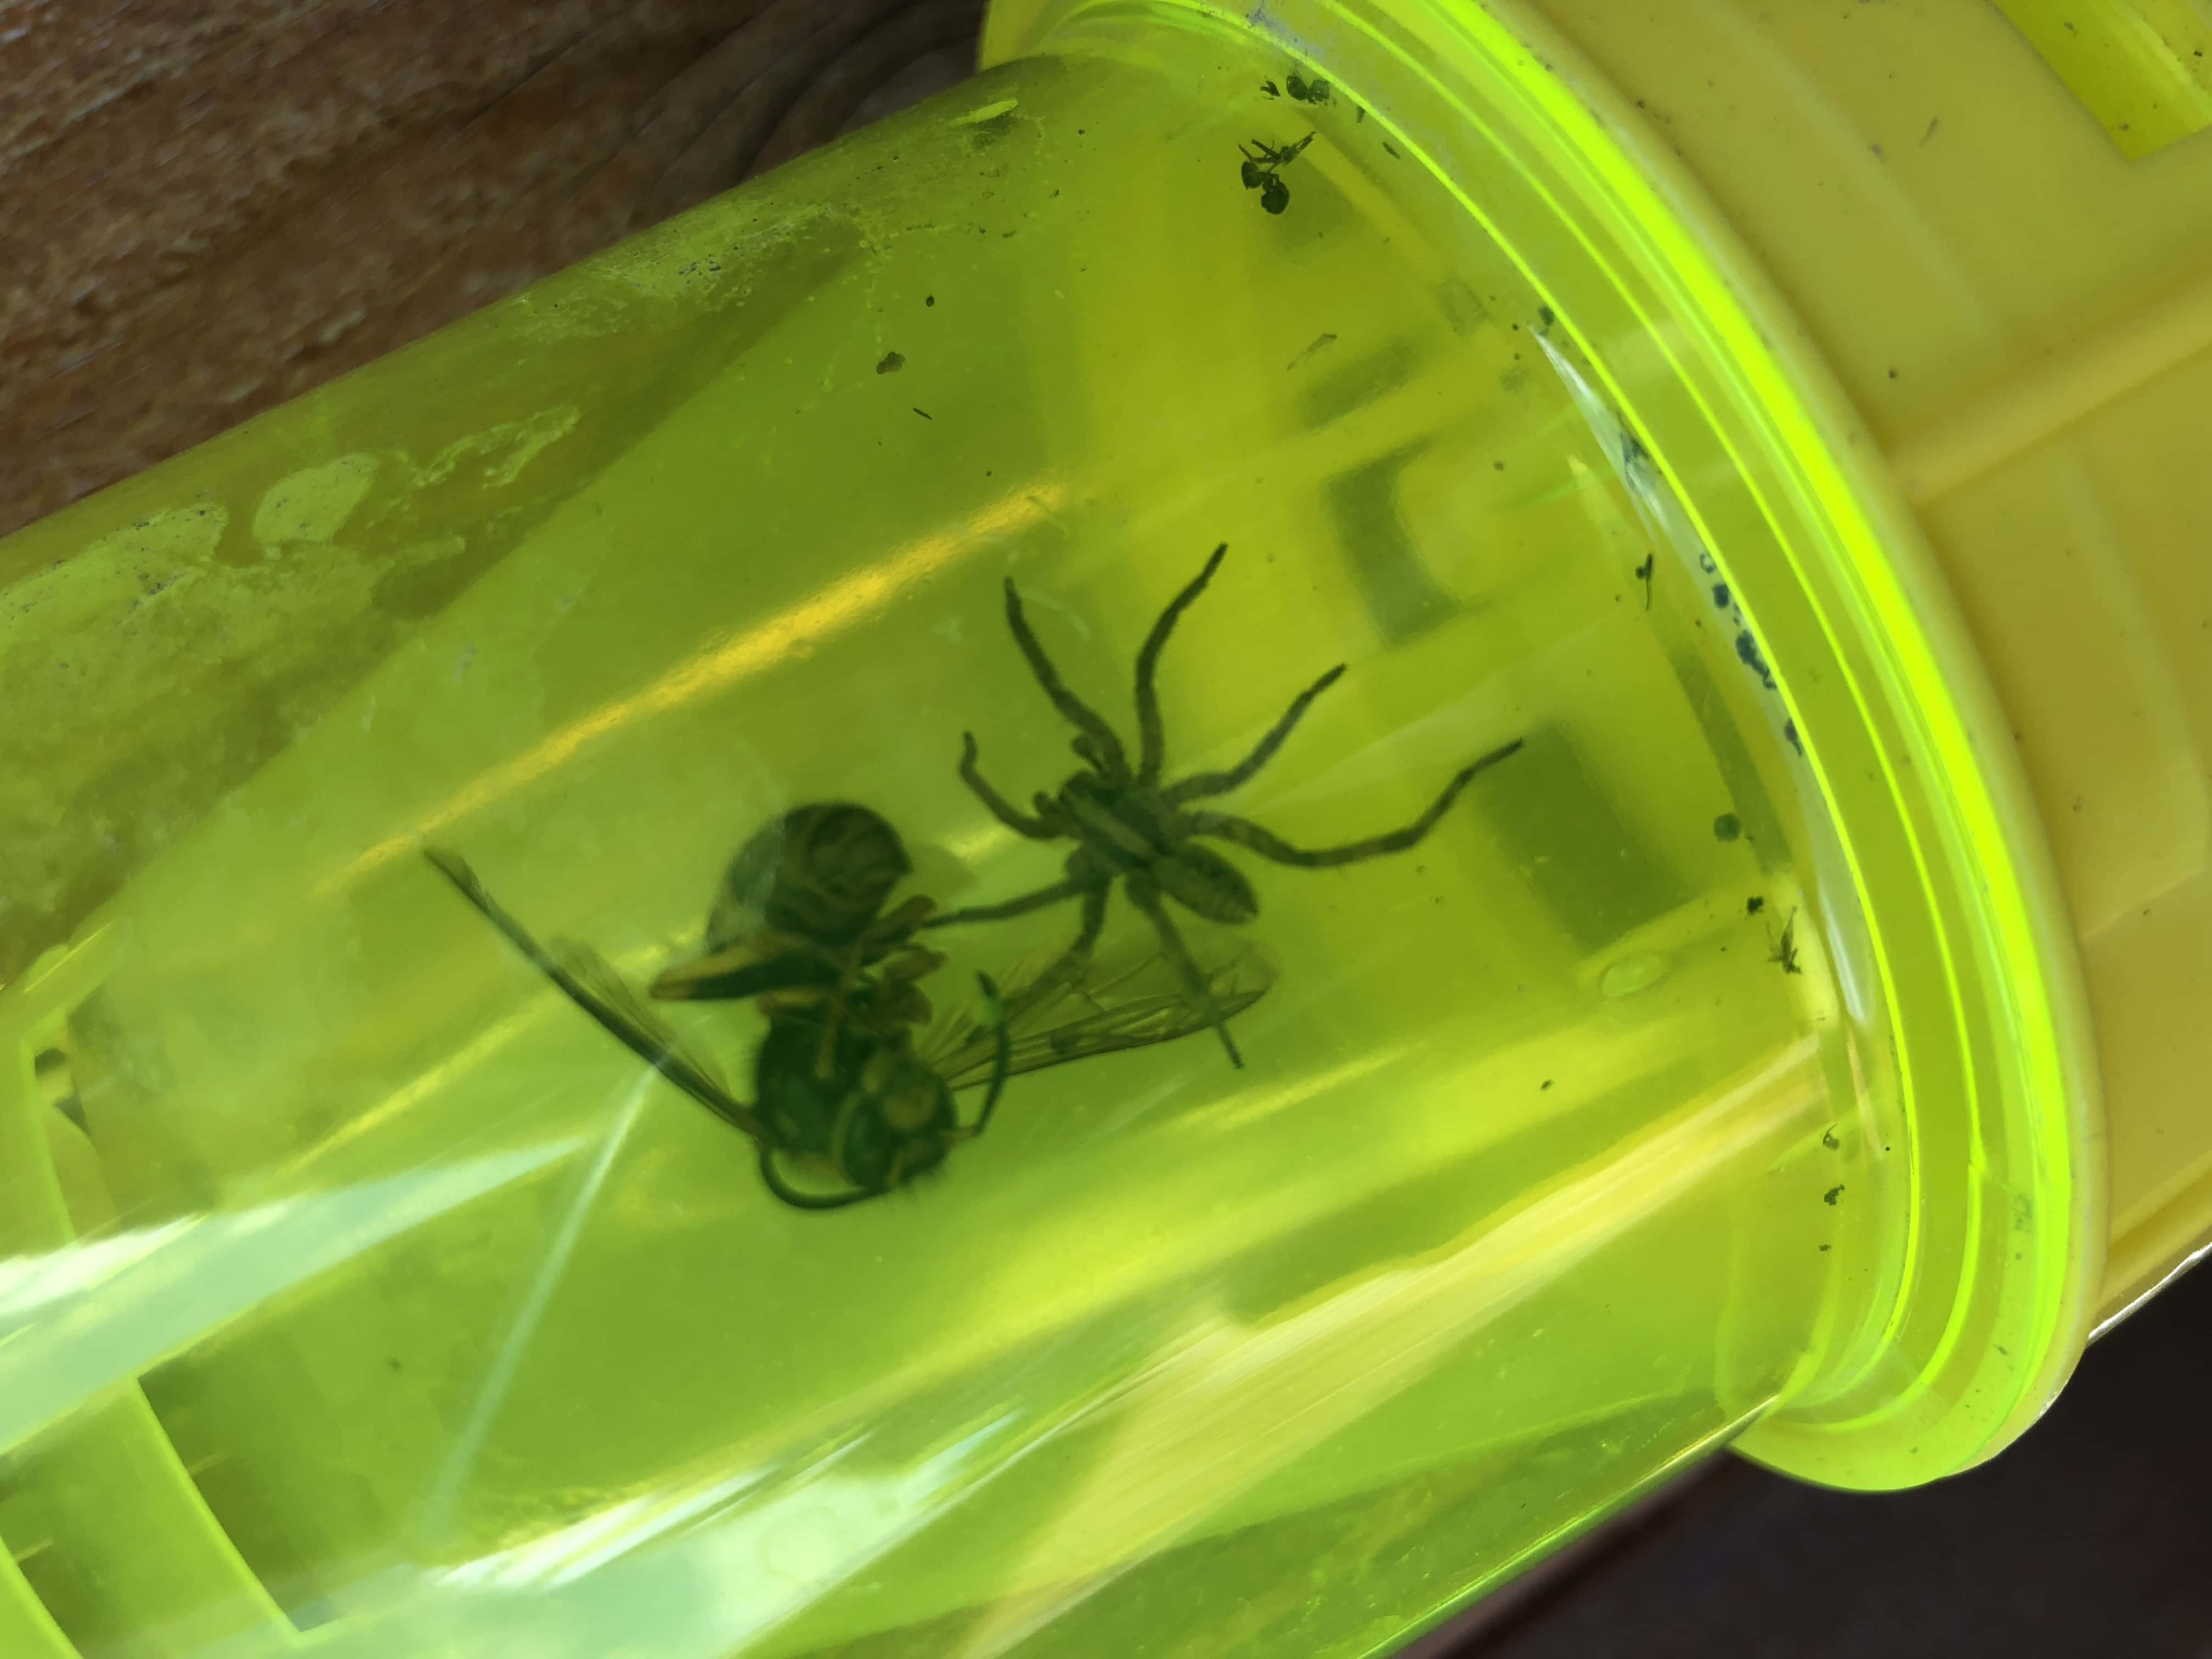 Picture of Schizocosa (Lanceolate Wolf Spiders) - Dorsal